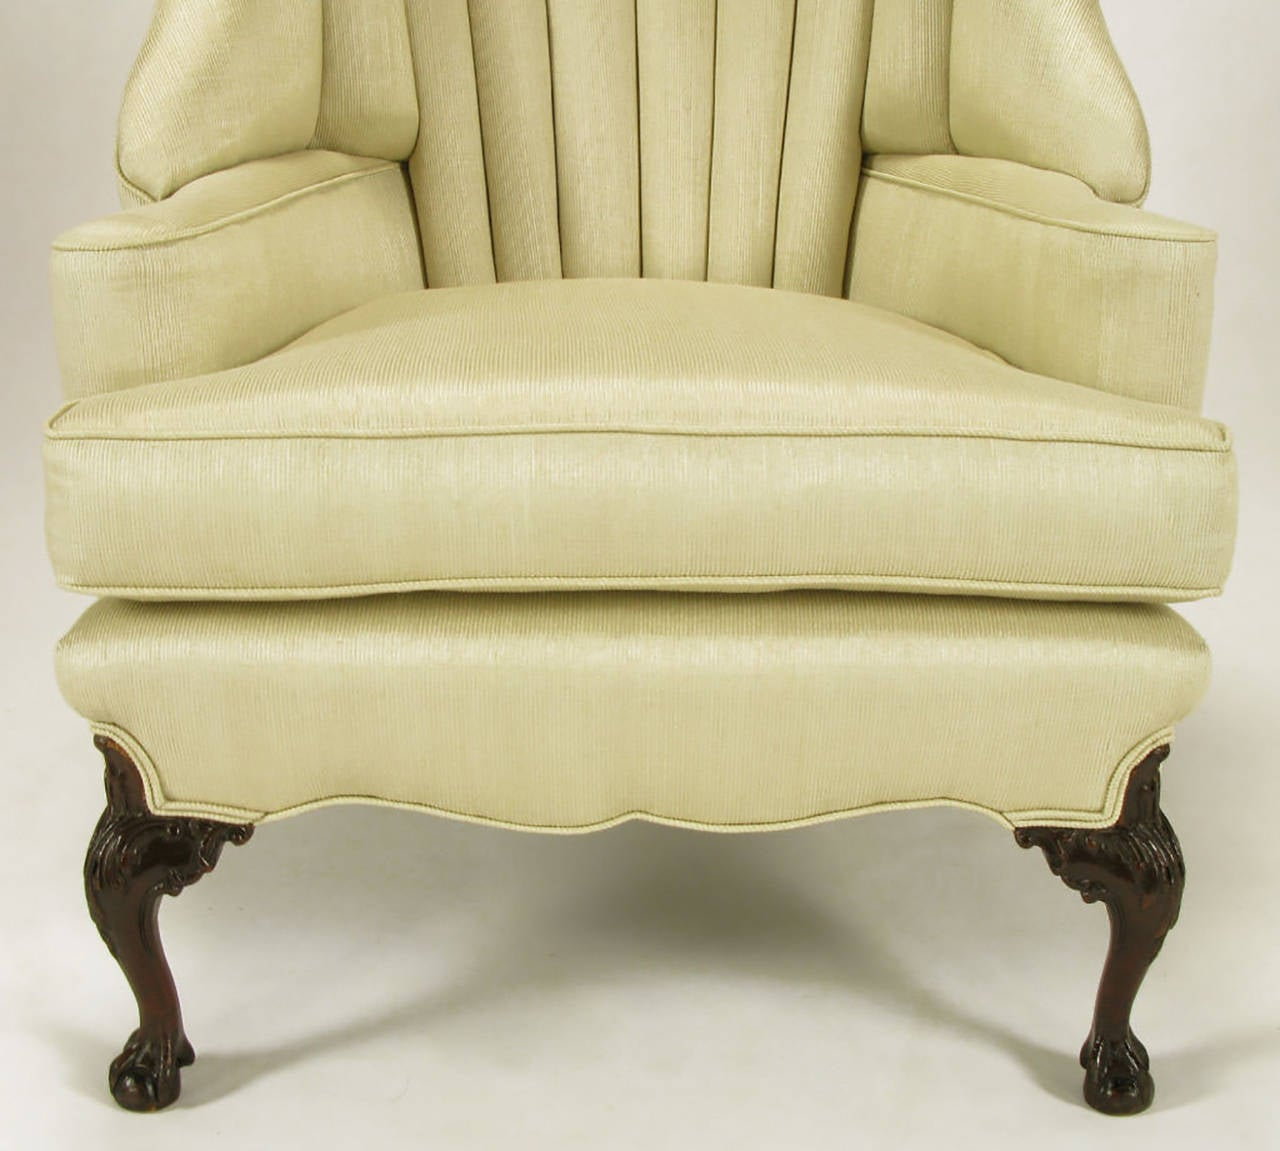 1930s Channel Back Claw Foot Georgian Wingback Chair For Sale 2